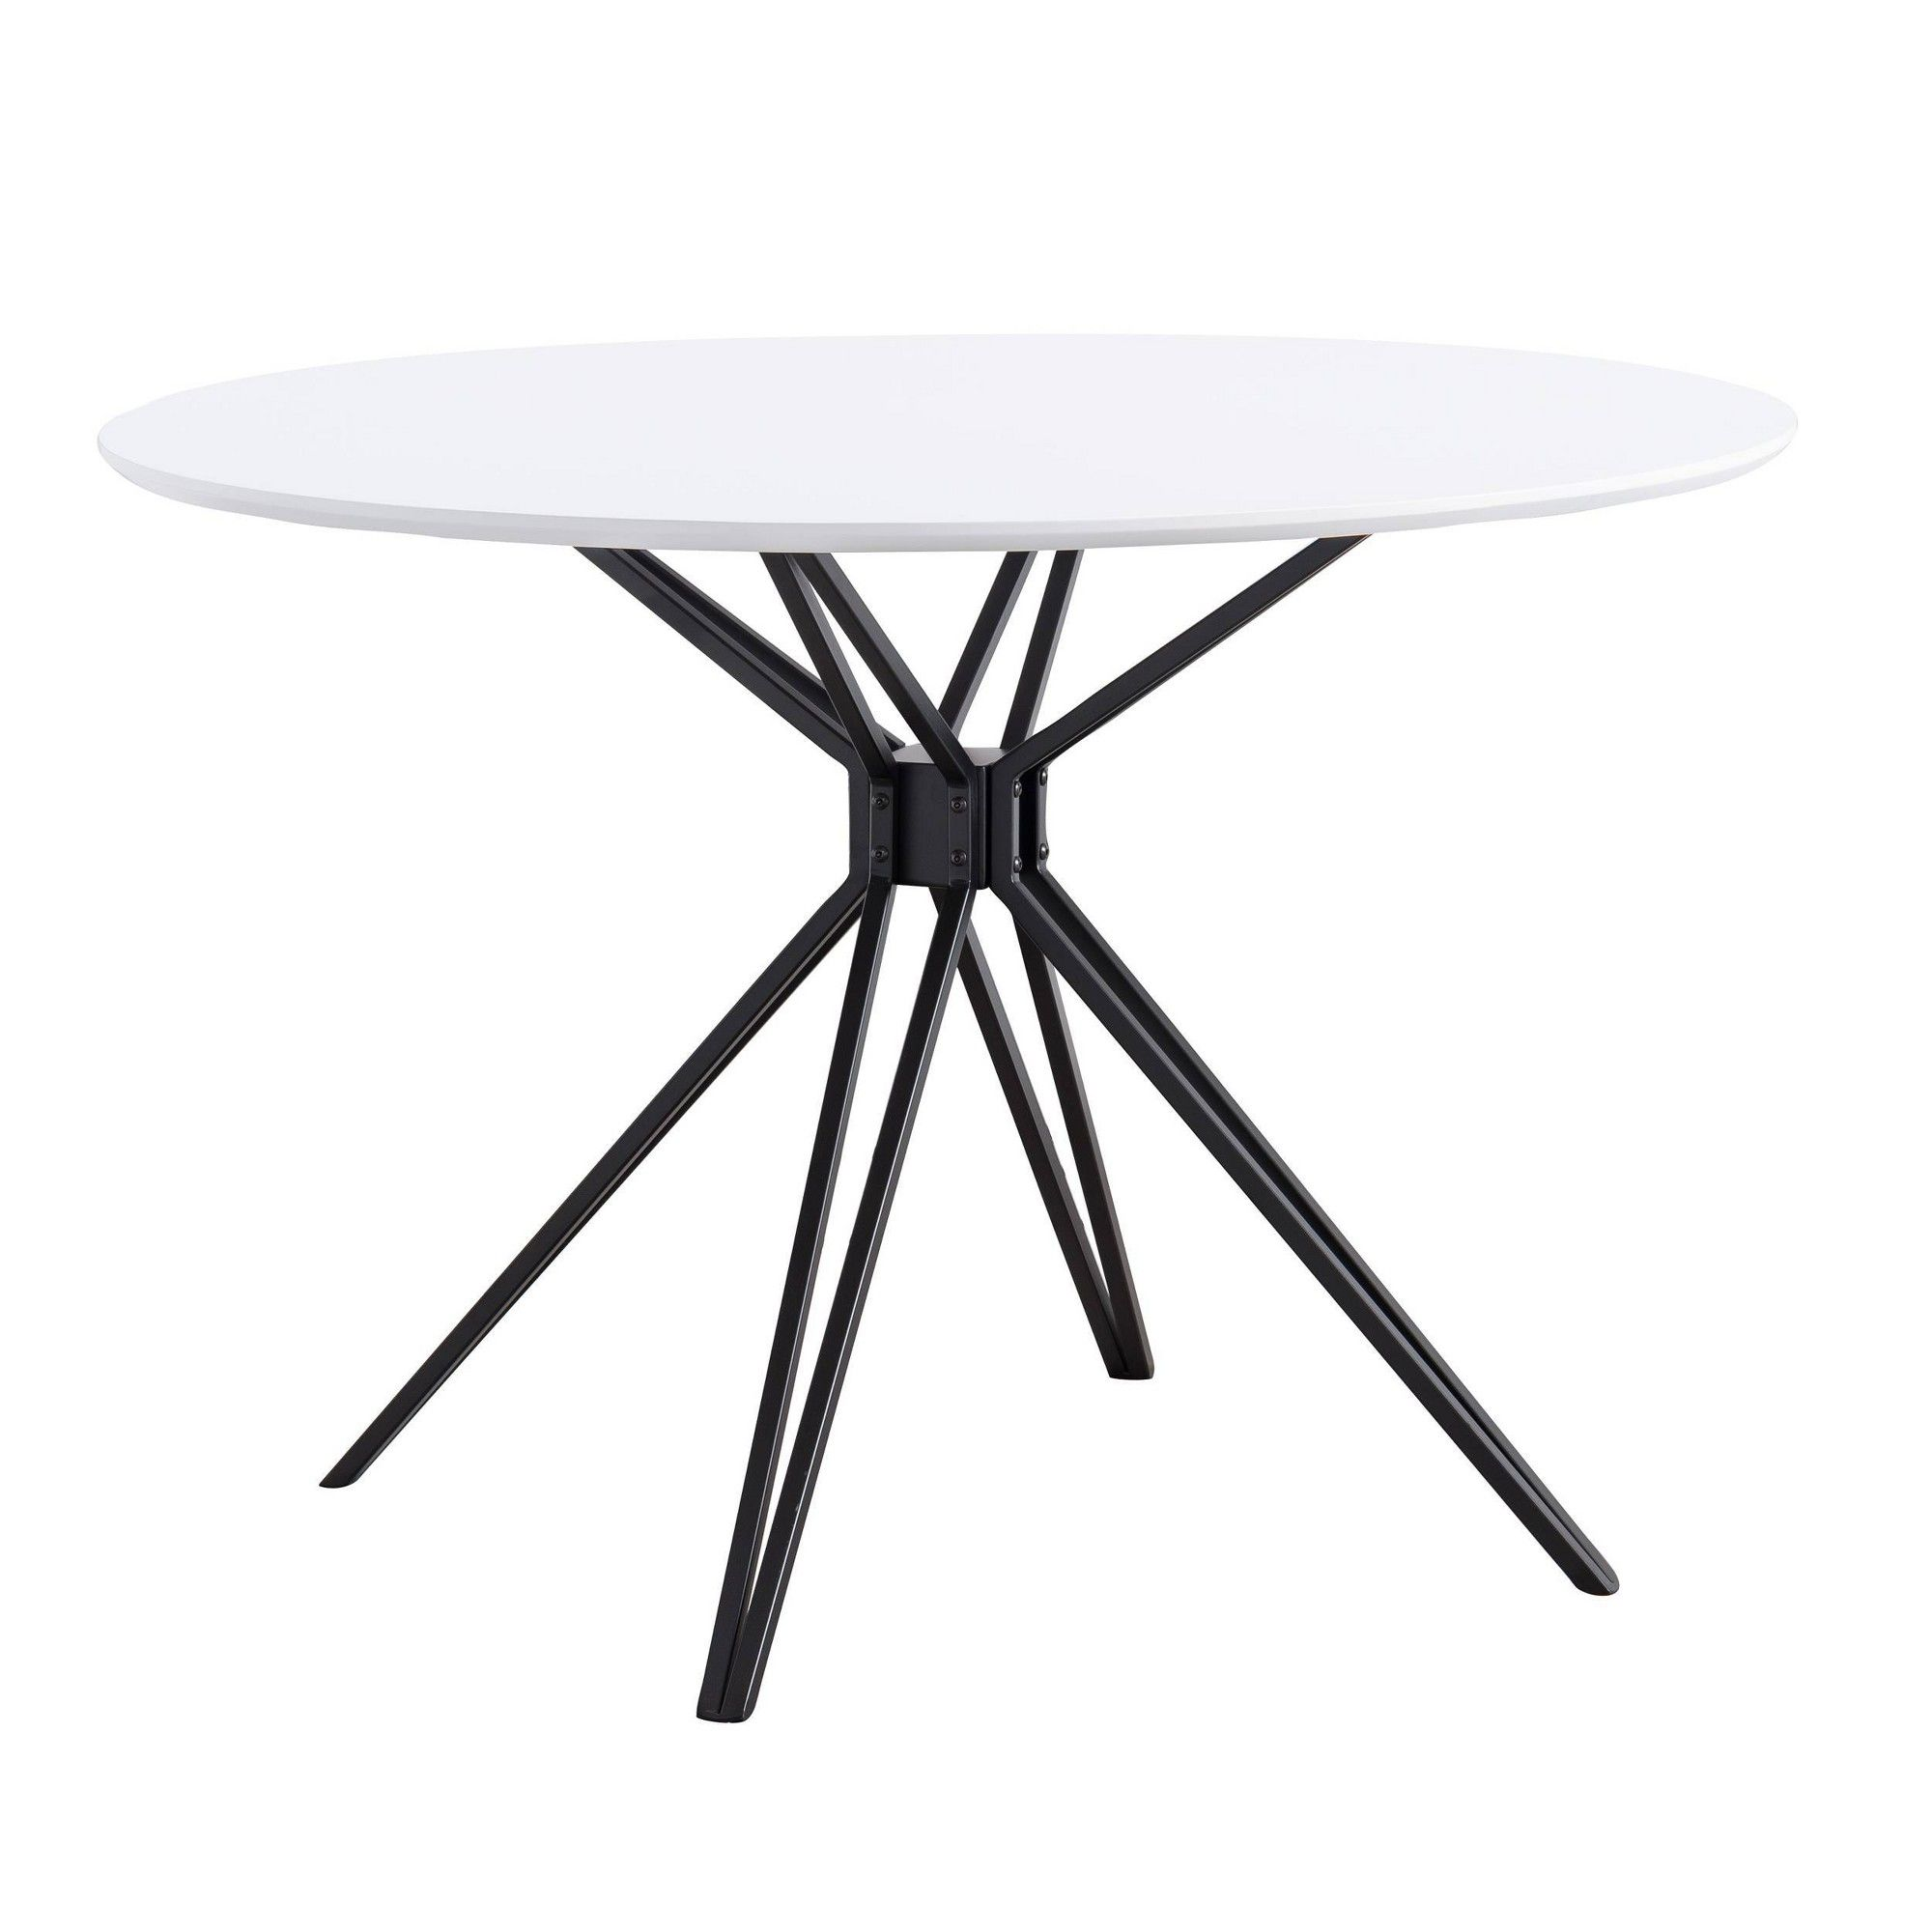 Atticus Dining Table Black Dining Room Dining Table